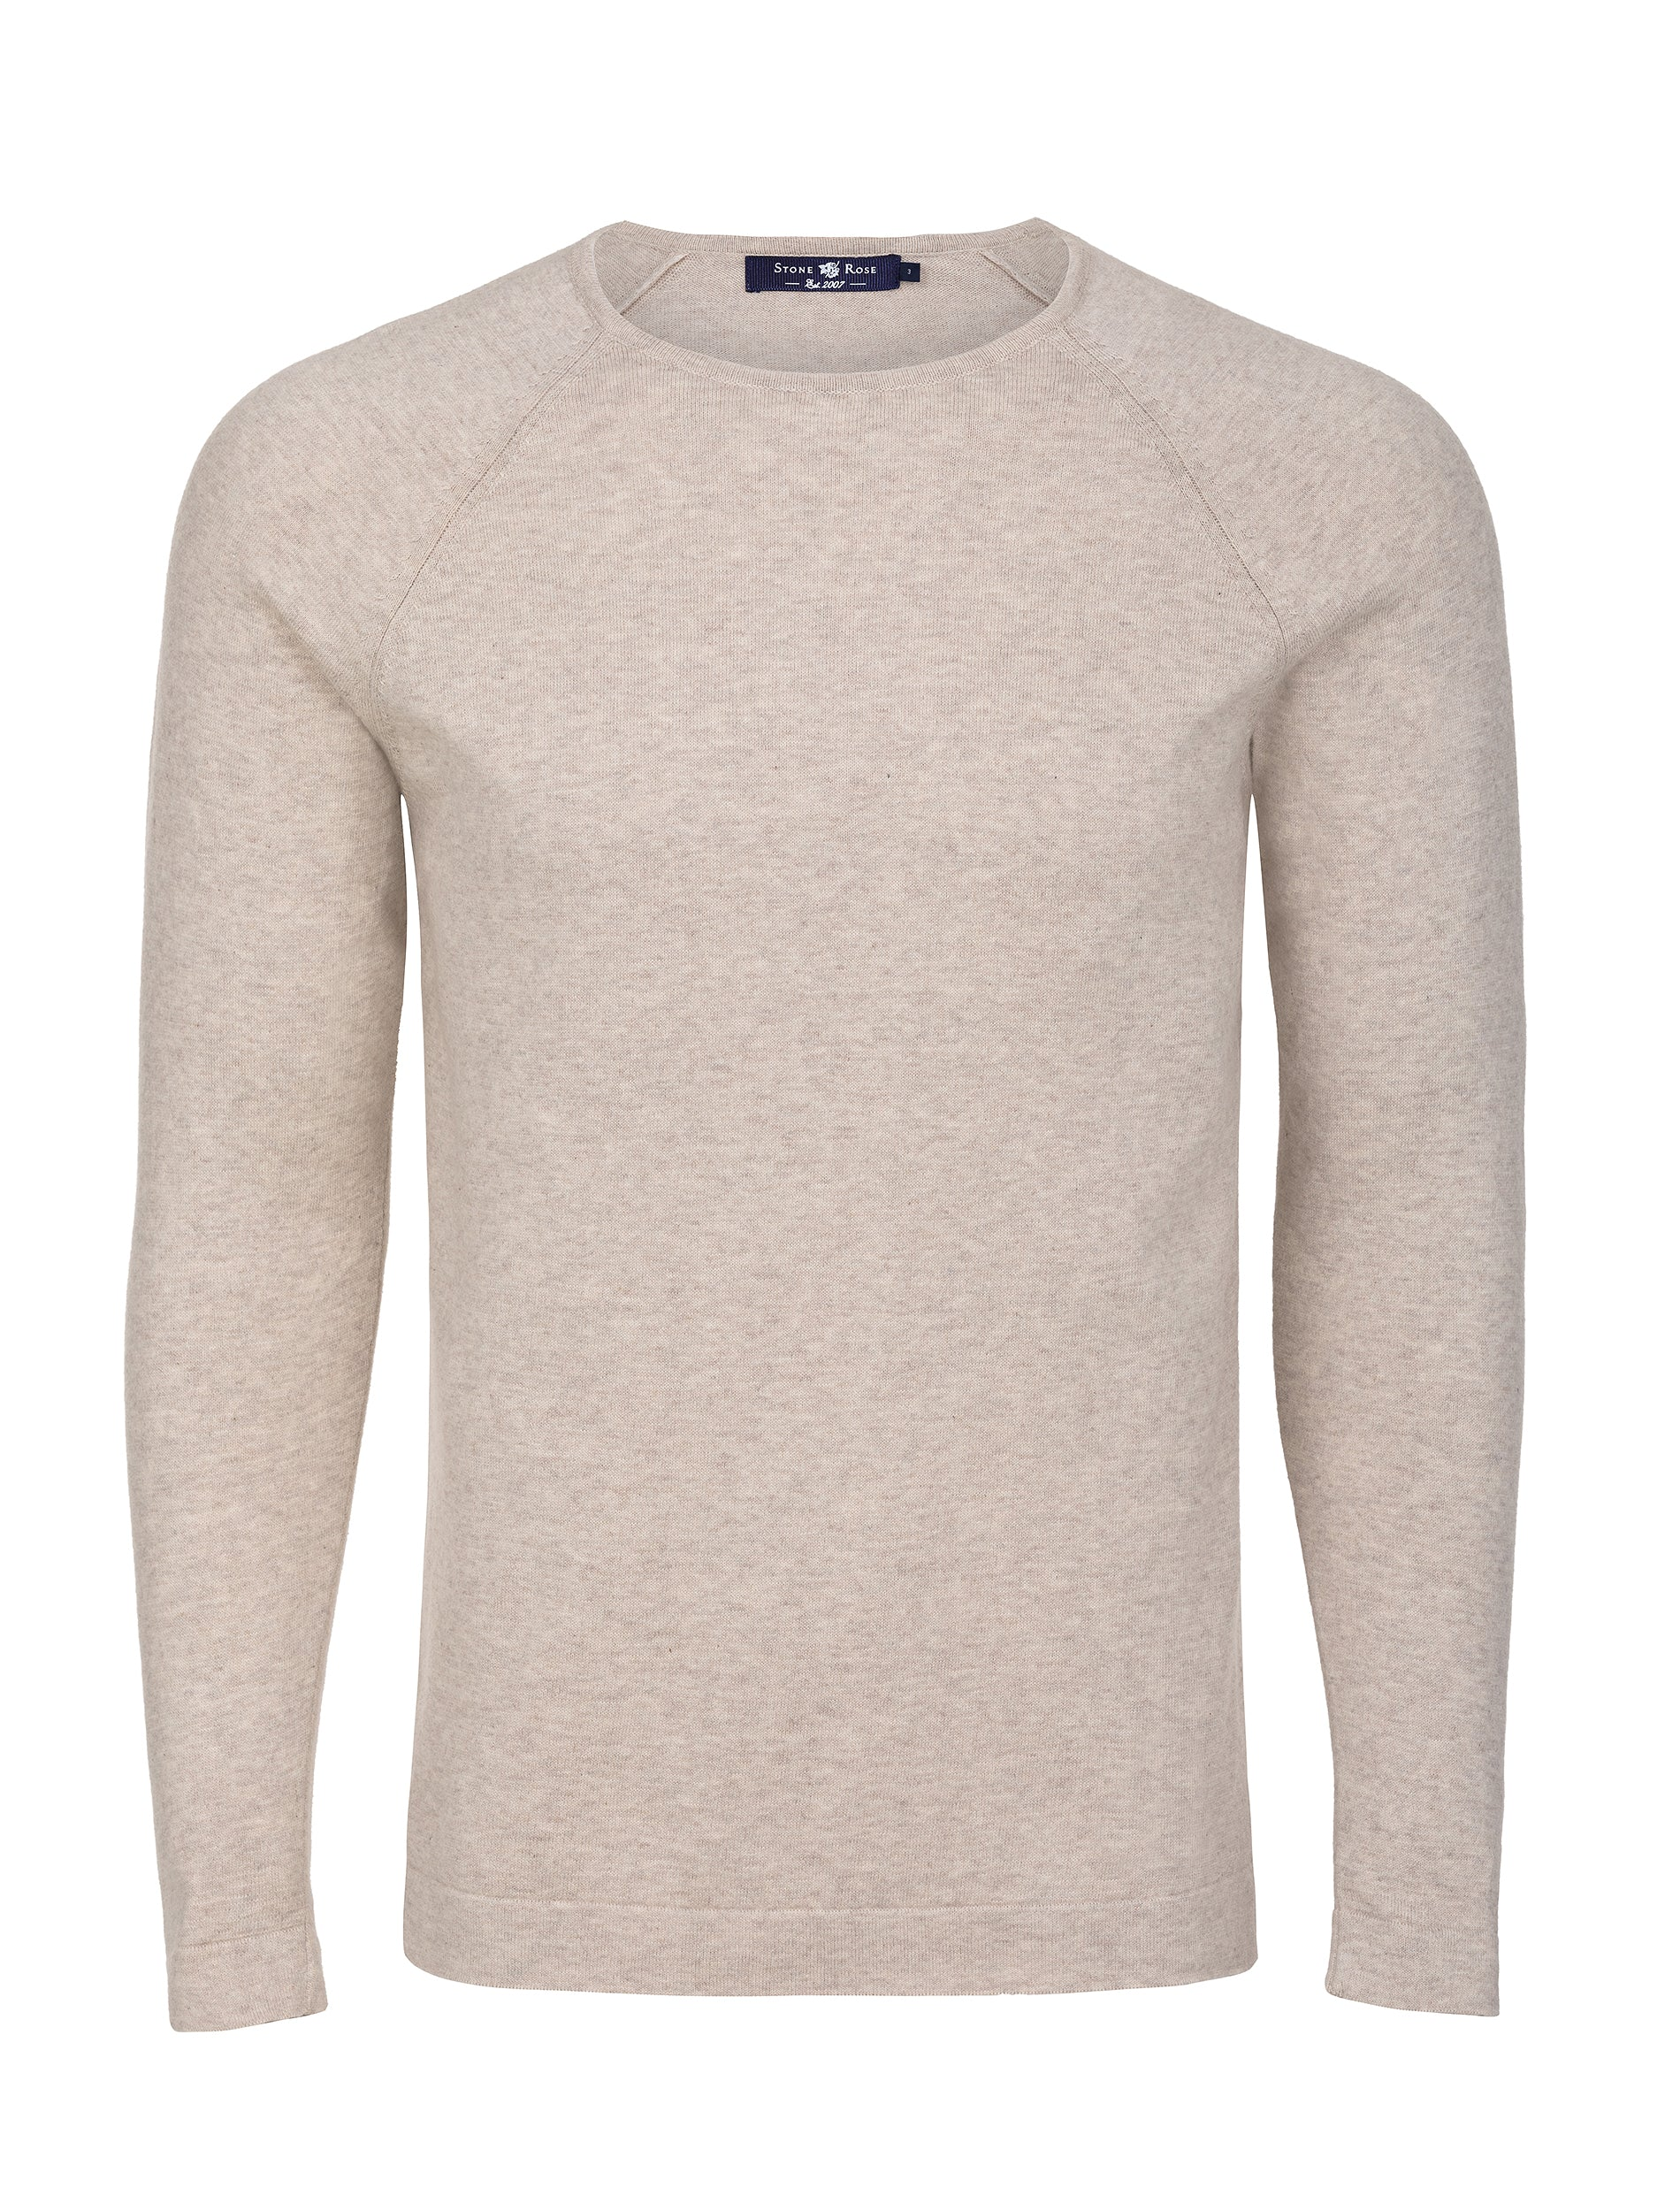 Ivory Heather Knit Sweater-Stone Rose